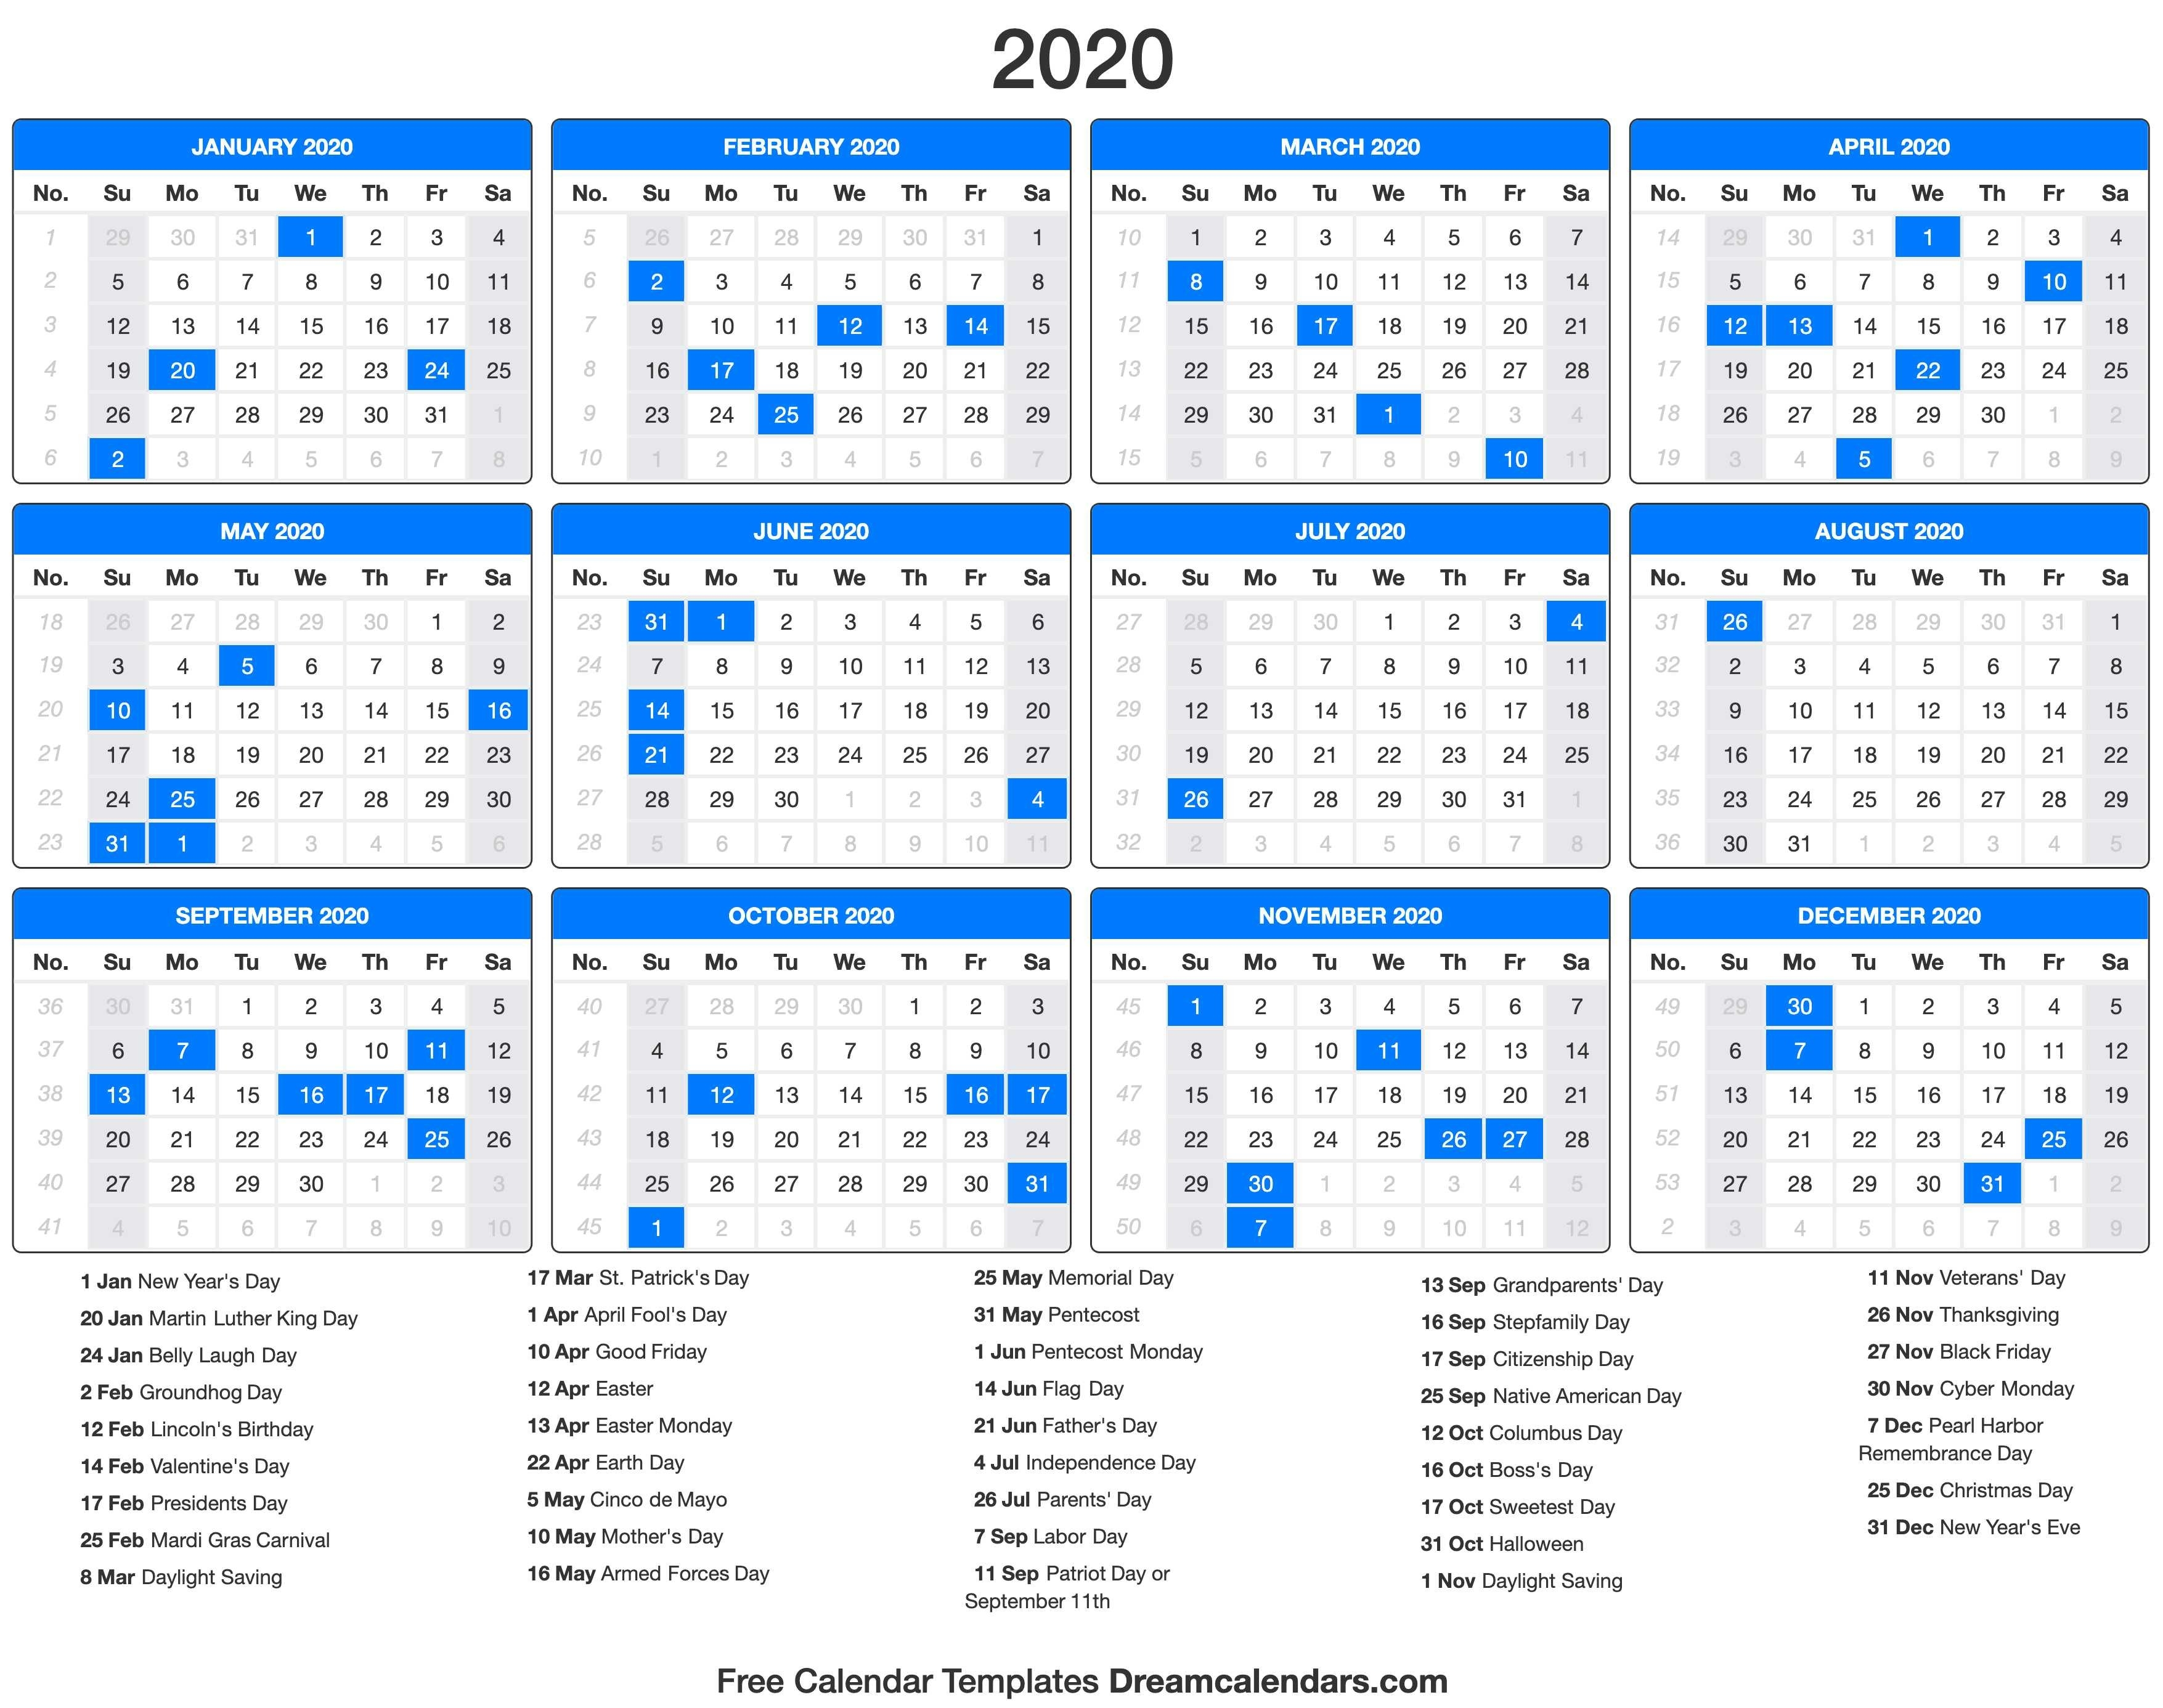 Dream Calendars - Make Your Calendar Template Blog-2020 Calendar With Holidays Inc Jewish